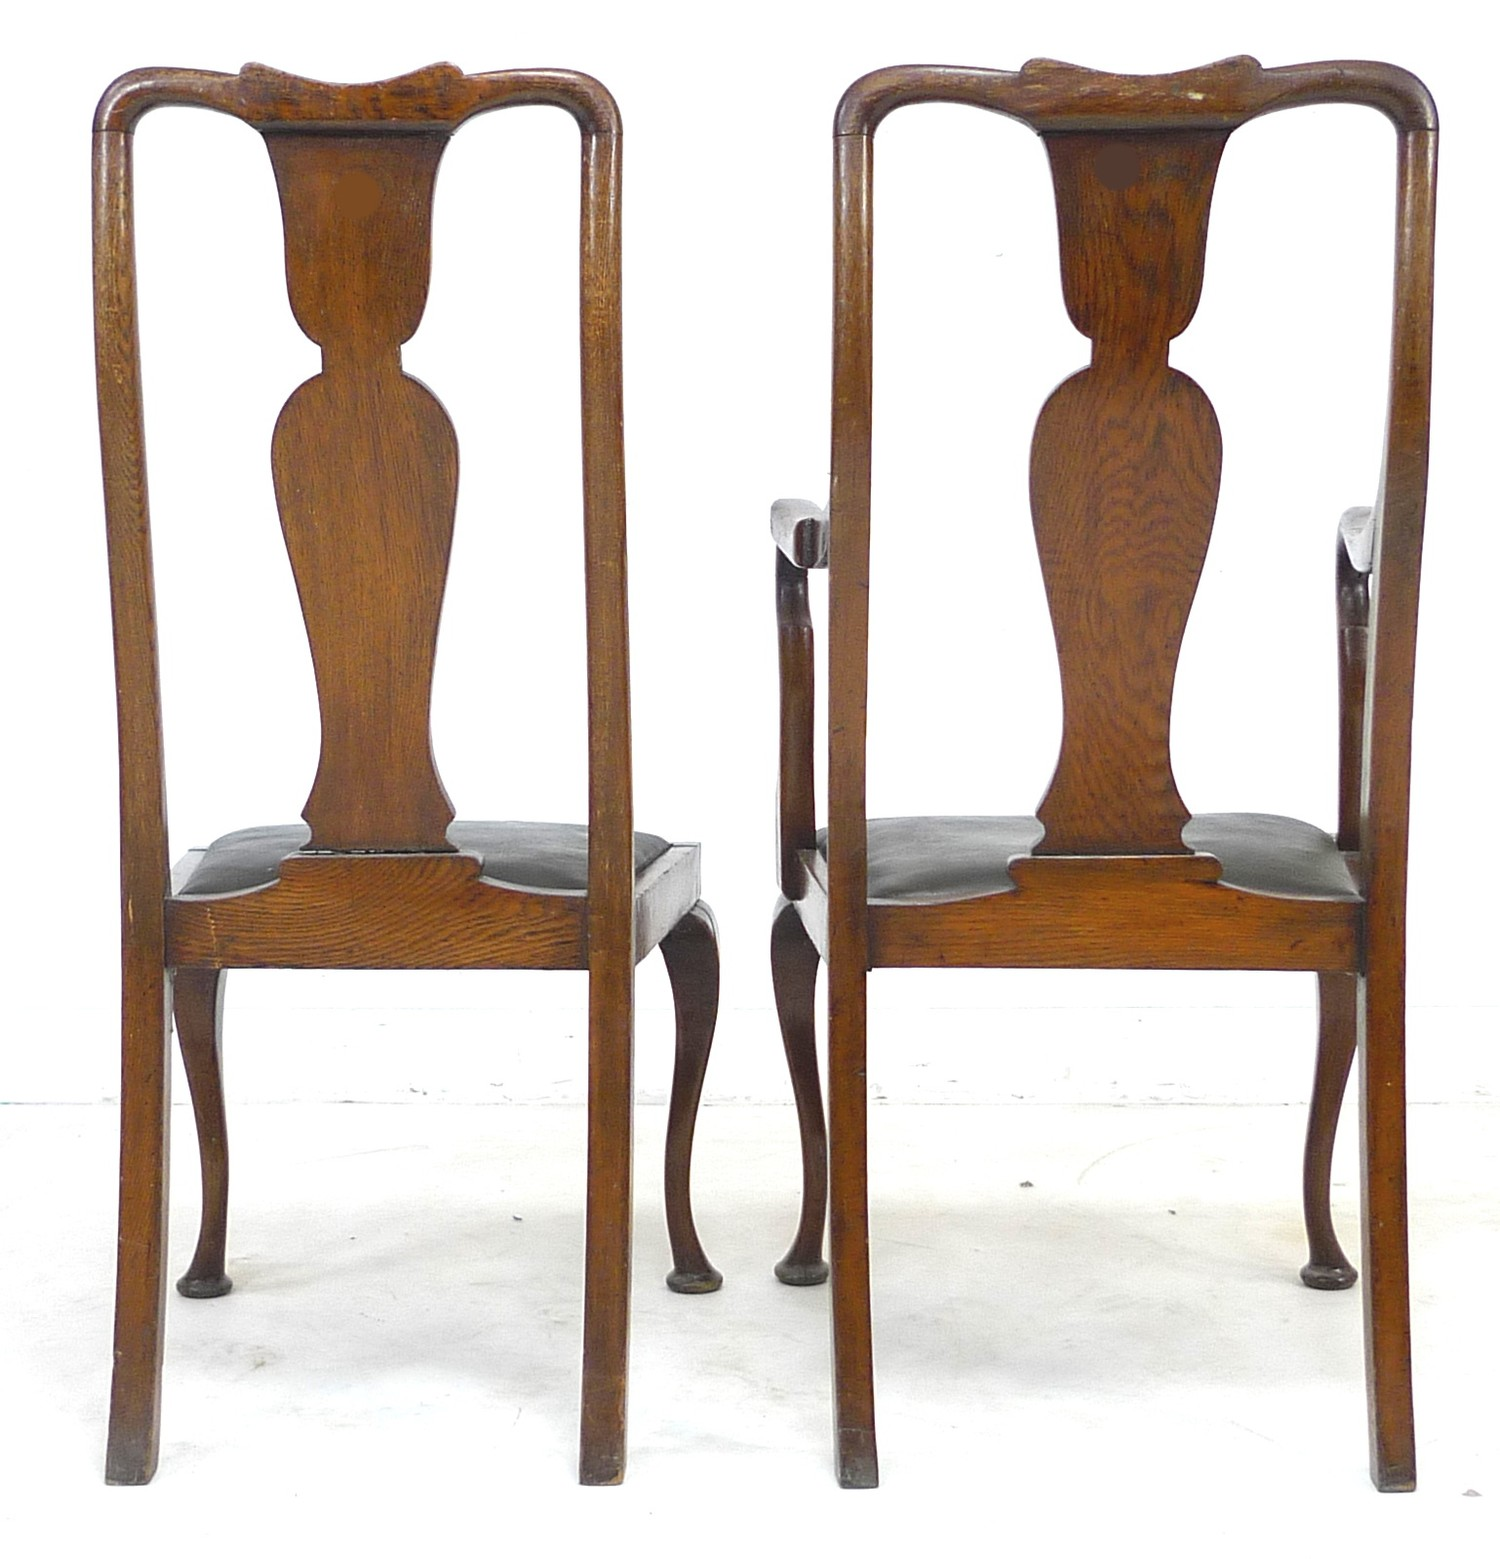 A set of six early 20th century oak dining chairs, 52 by 55 by 106cm high, in Queen Anne style - Image 4 of 4